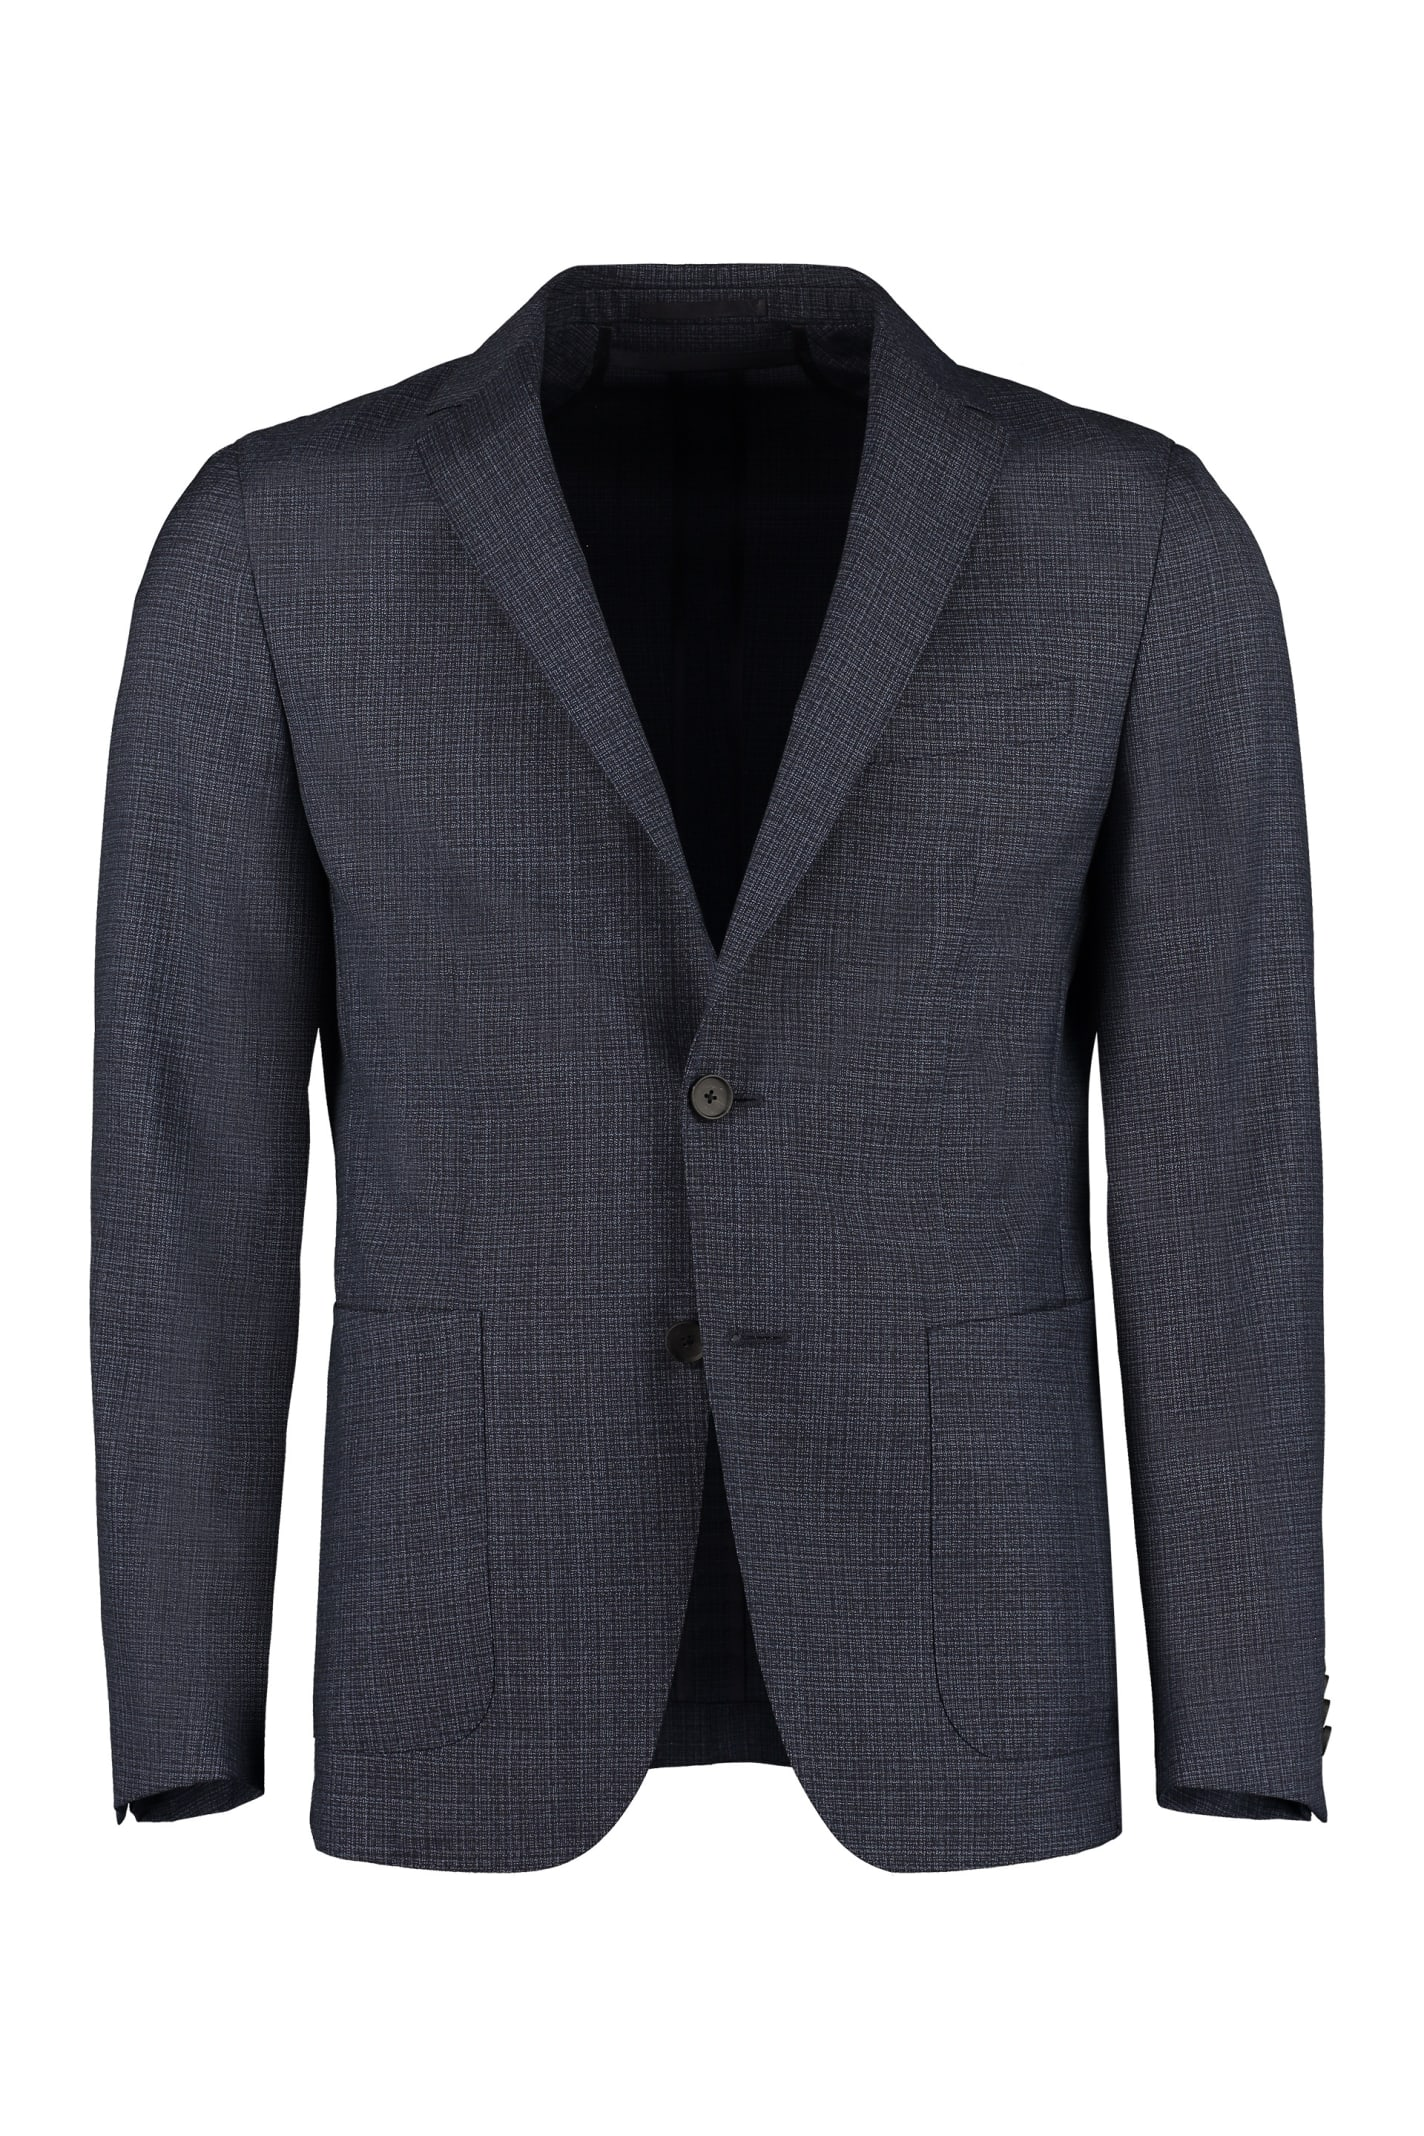 Hugo Boss Single-breasted Two-button Blazer